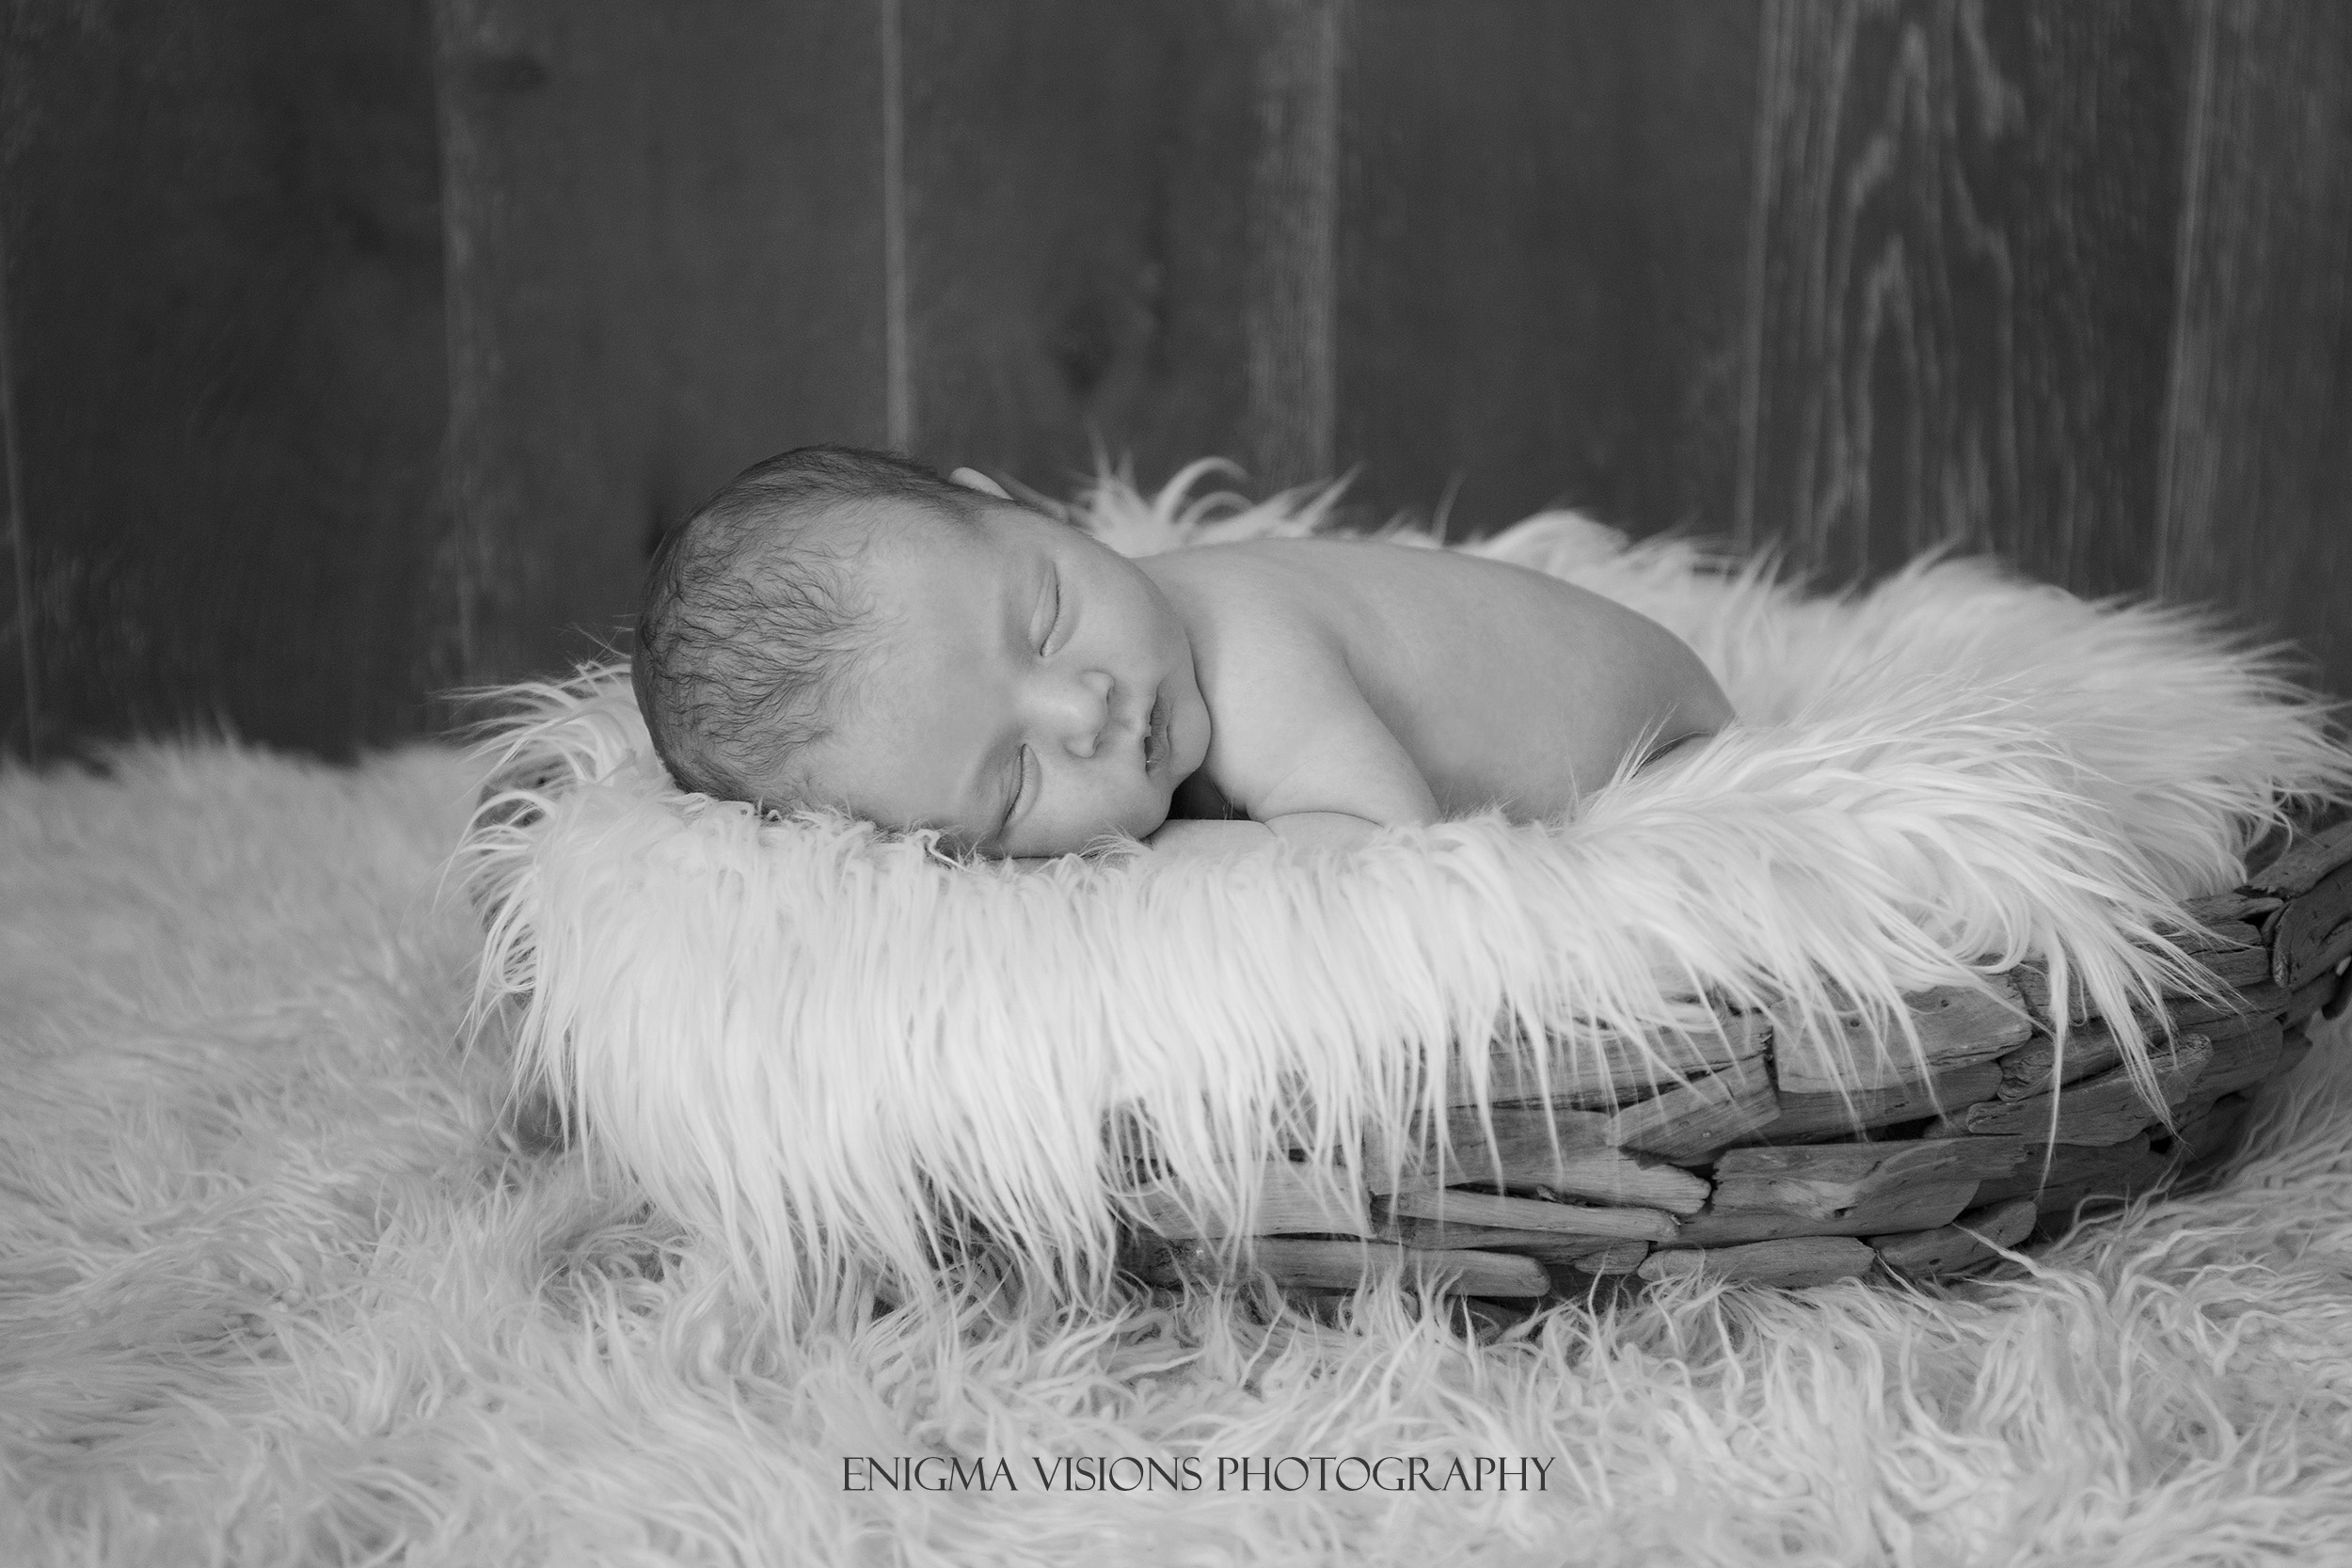 enigma_visions_photography_newborn (27).jpg